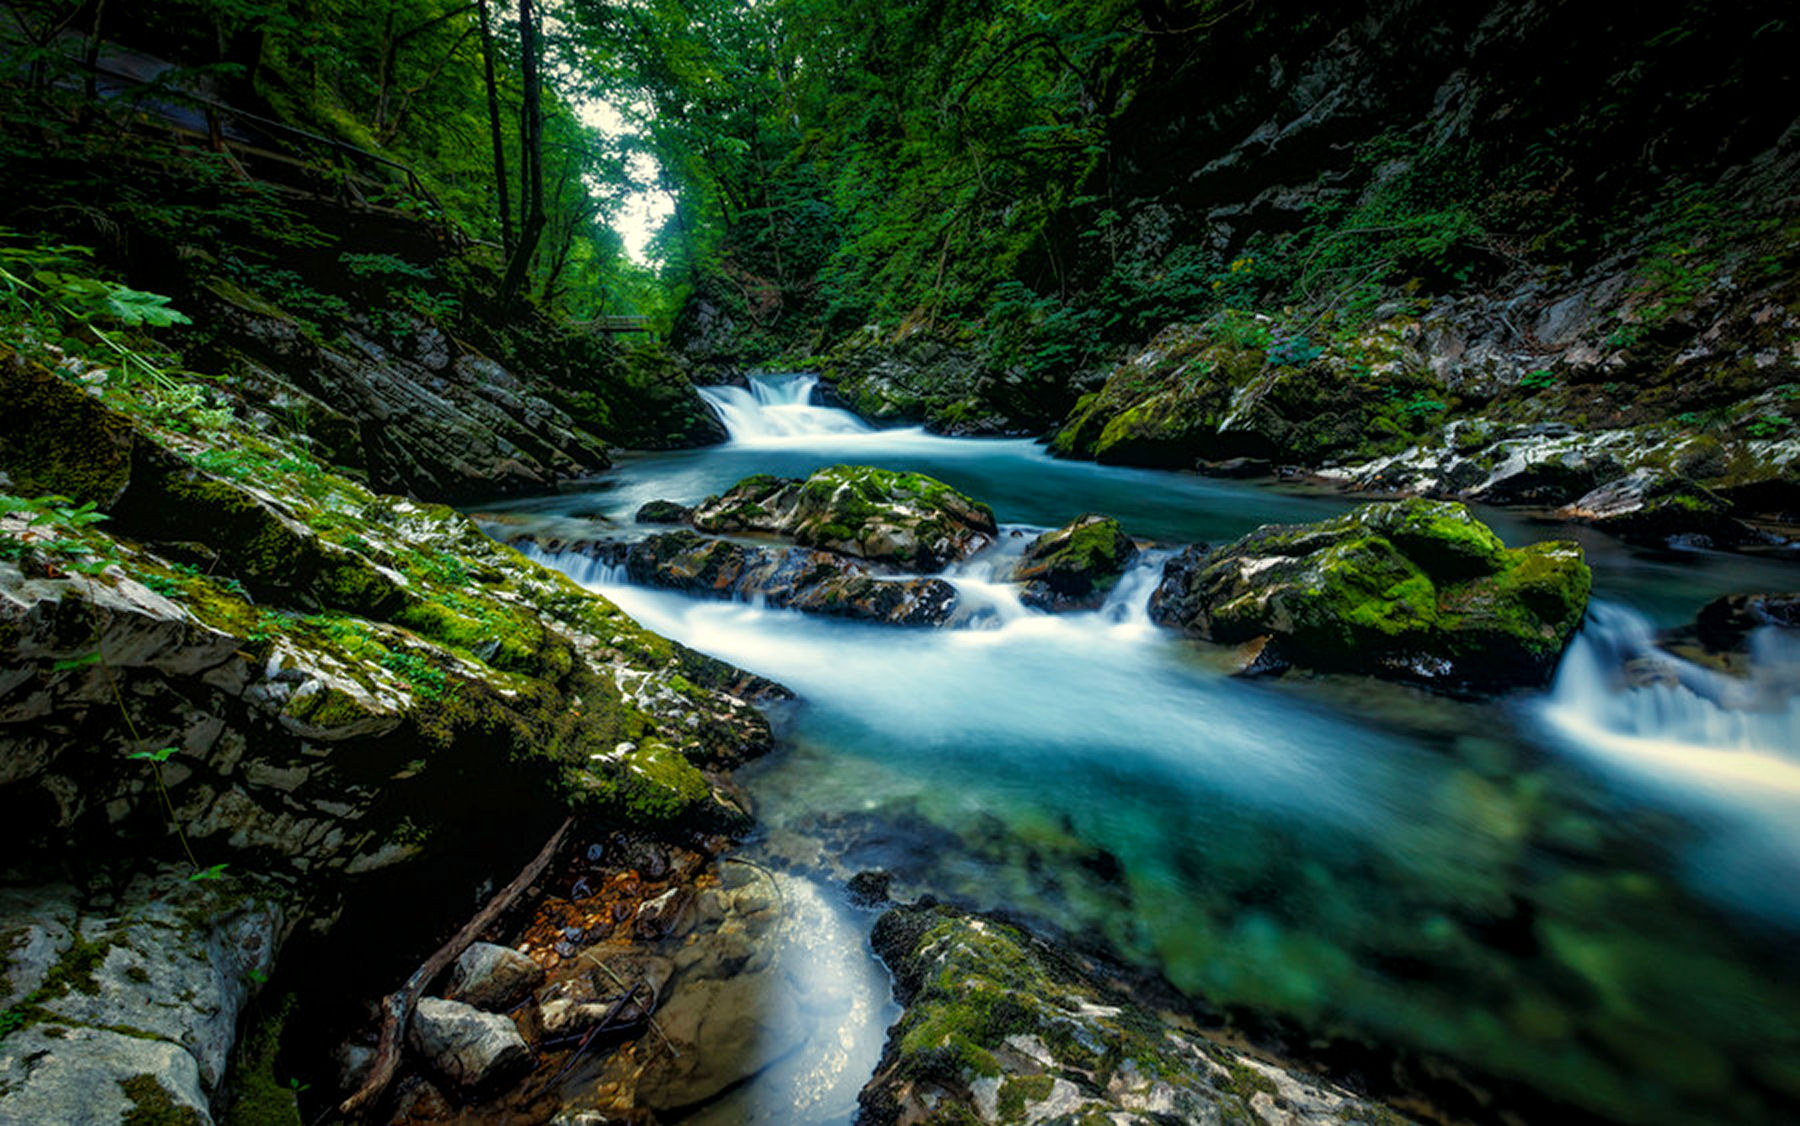 Vintgar gorge is a very calming place too